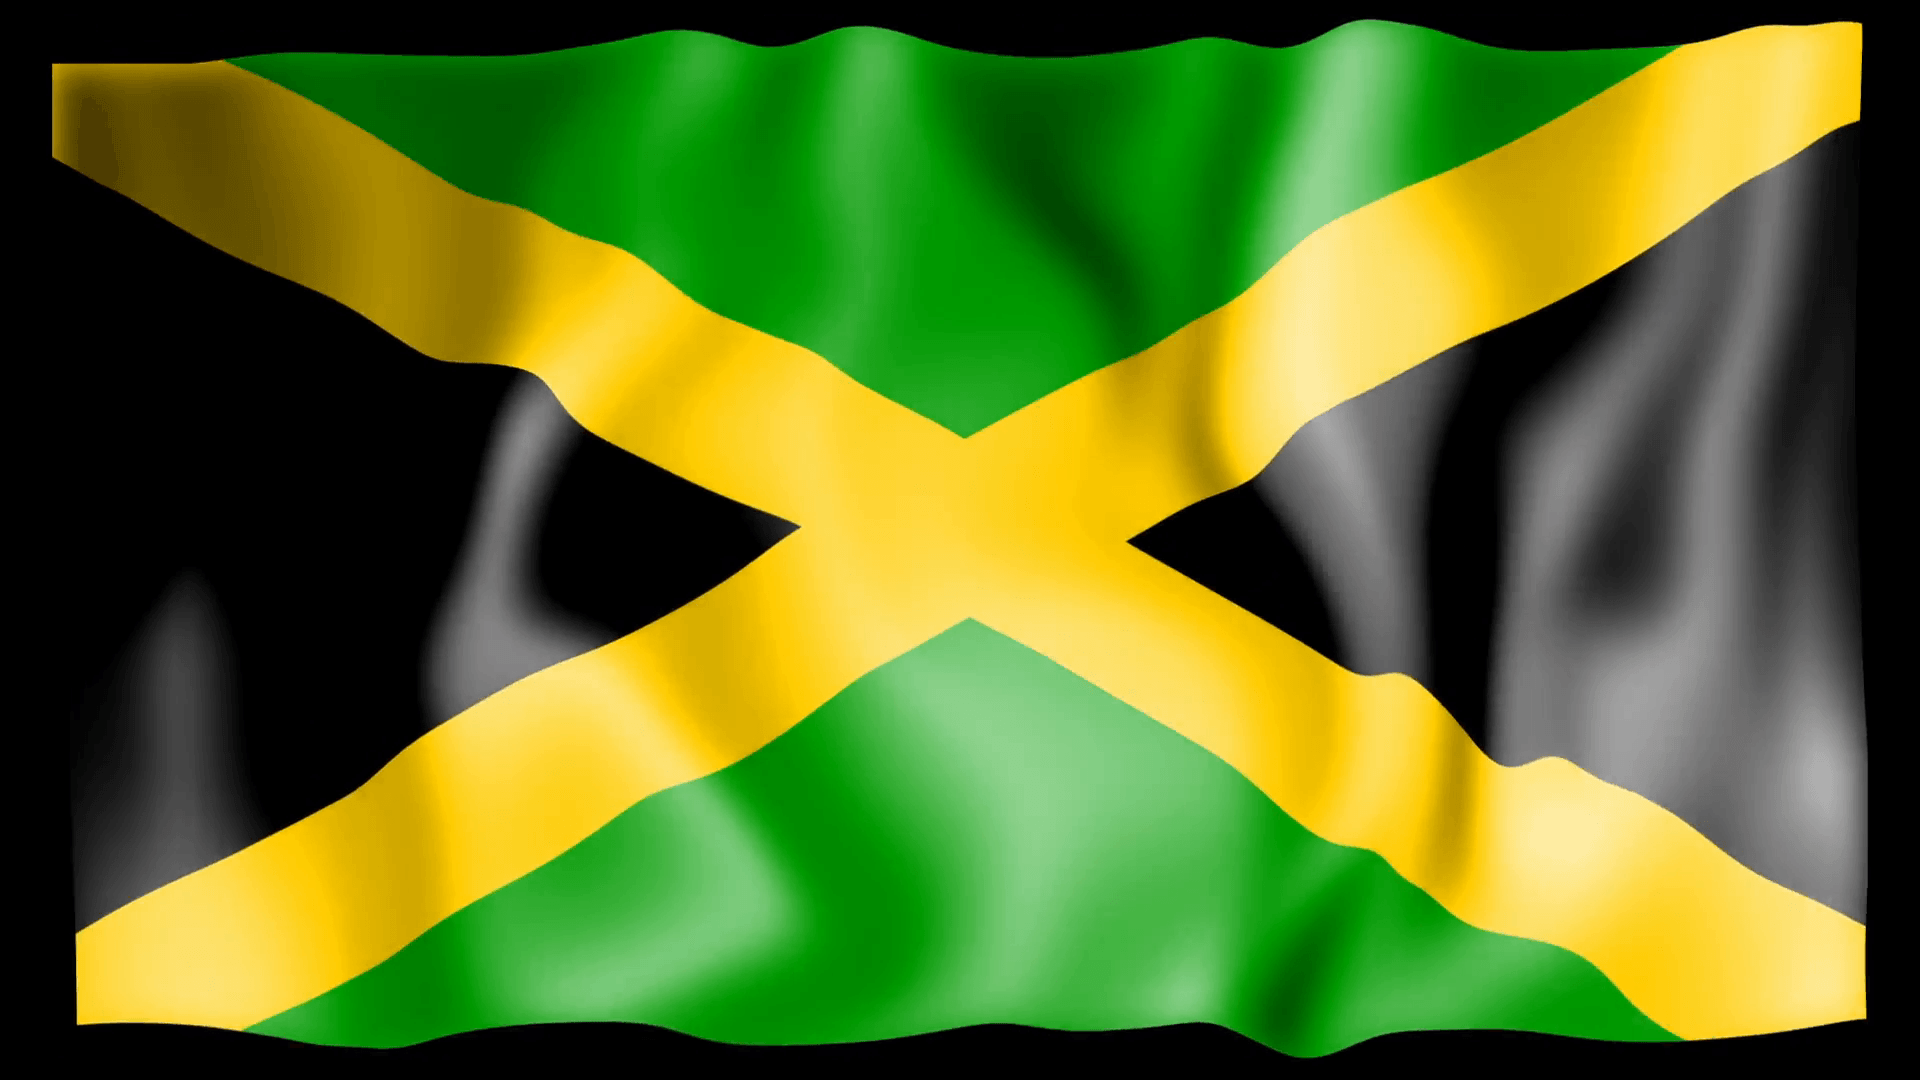 Inn Drawing 4K Ultra HD Jamaica Flag Wallpapers